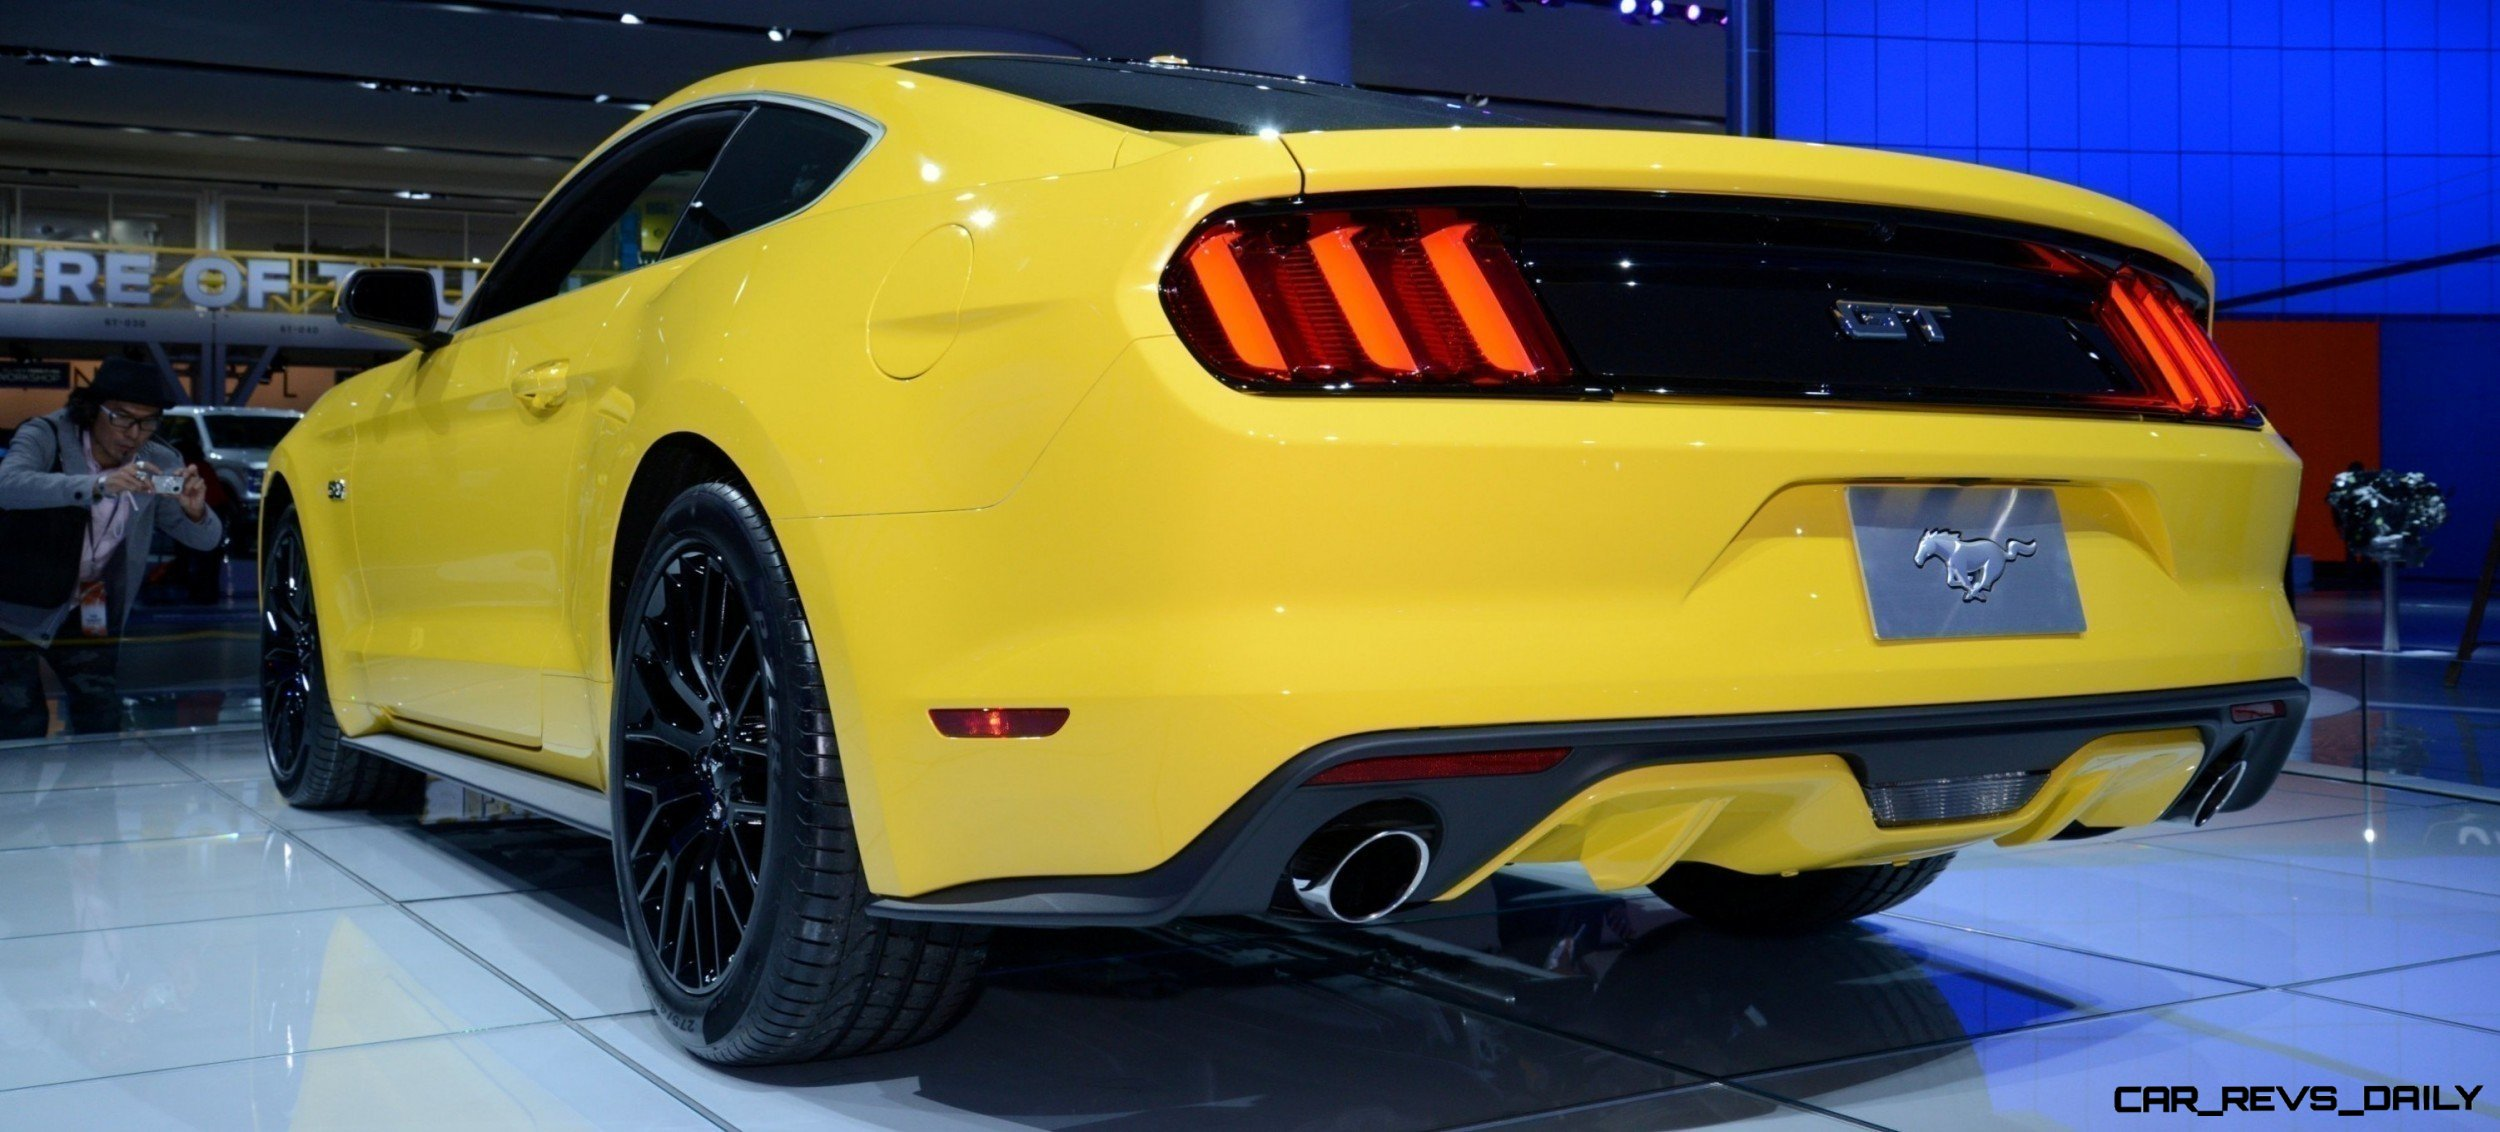 2015 Ford Mustang GT -- Mean, Lean and Ready To Brawl in Latest Real-Life Photos -- Yellow GT 14